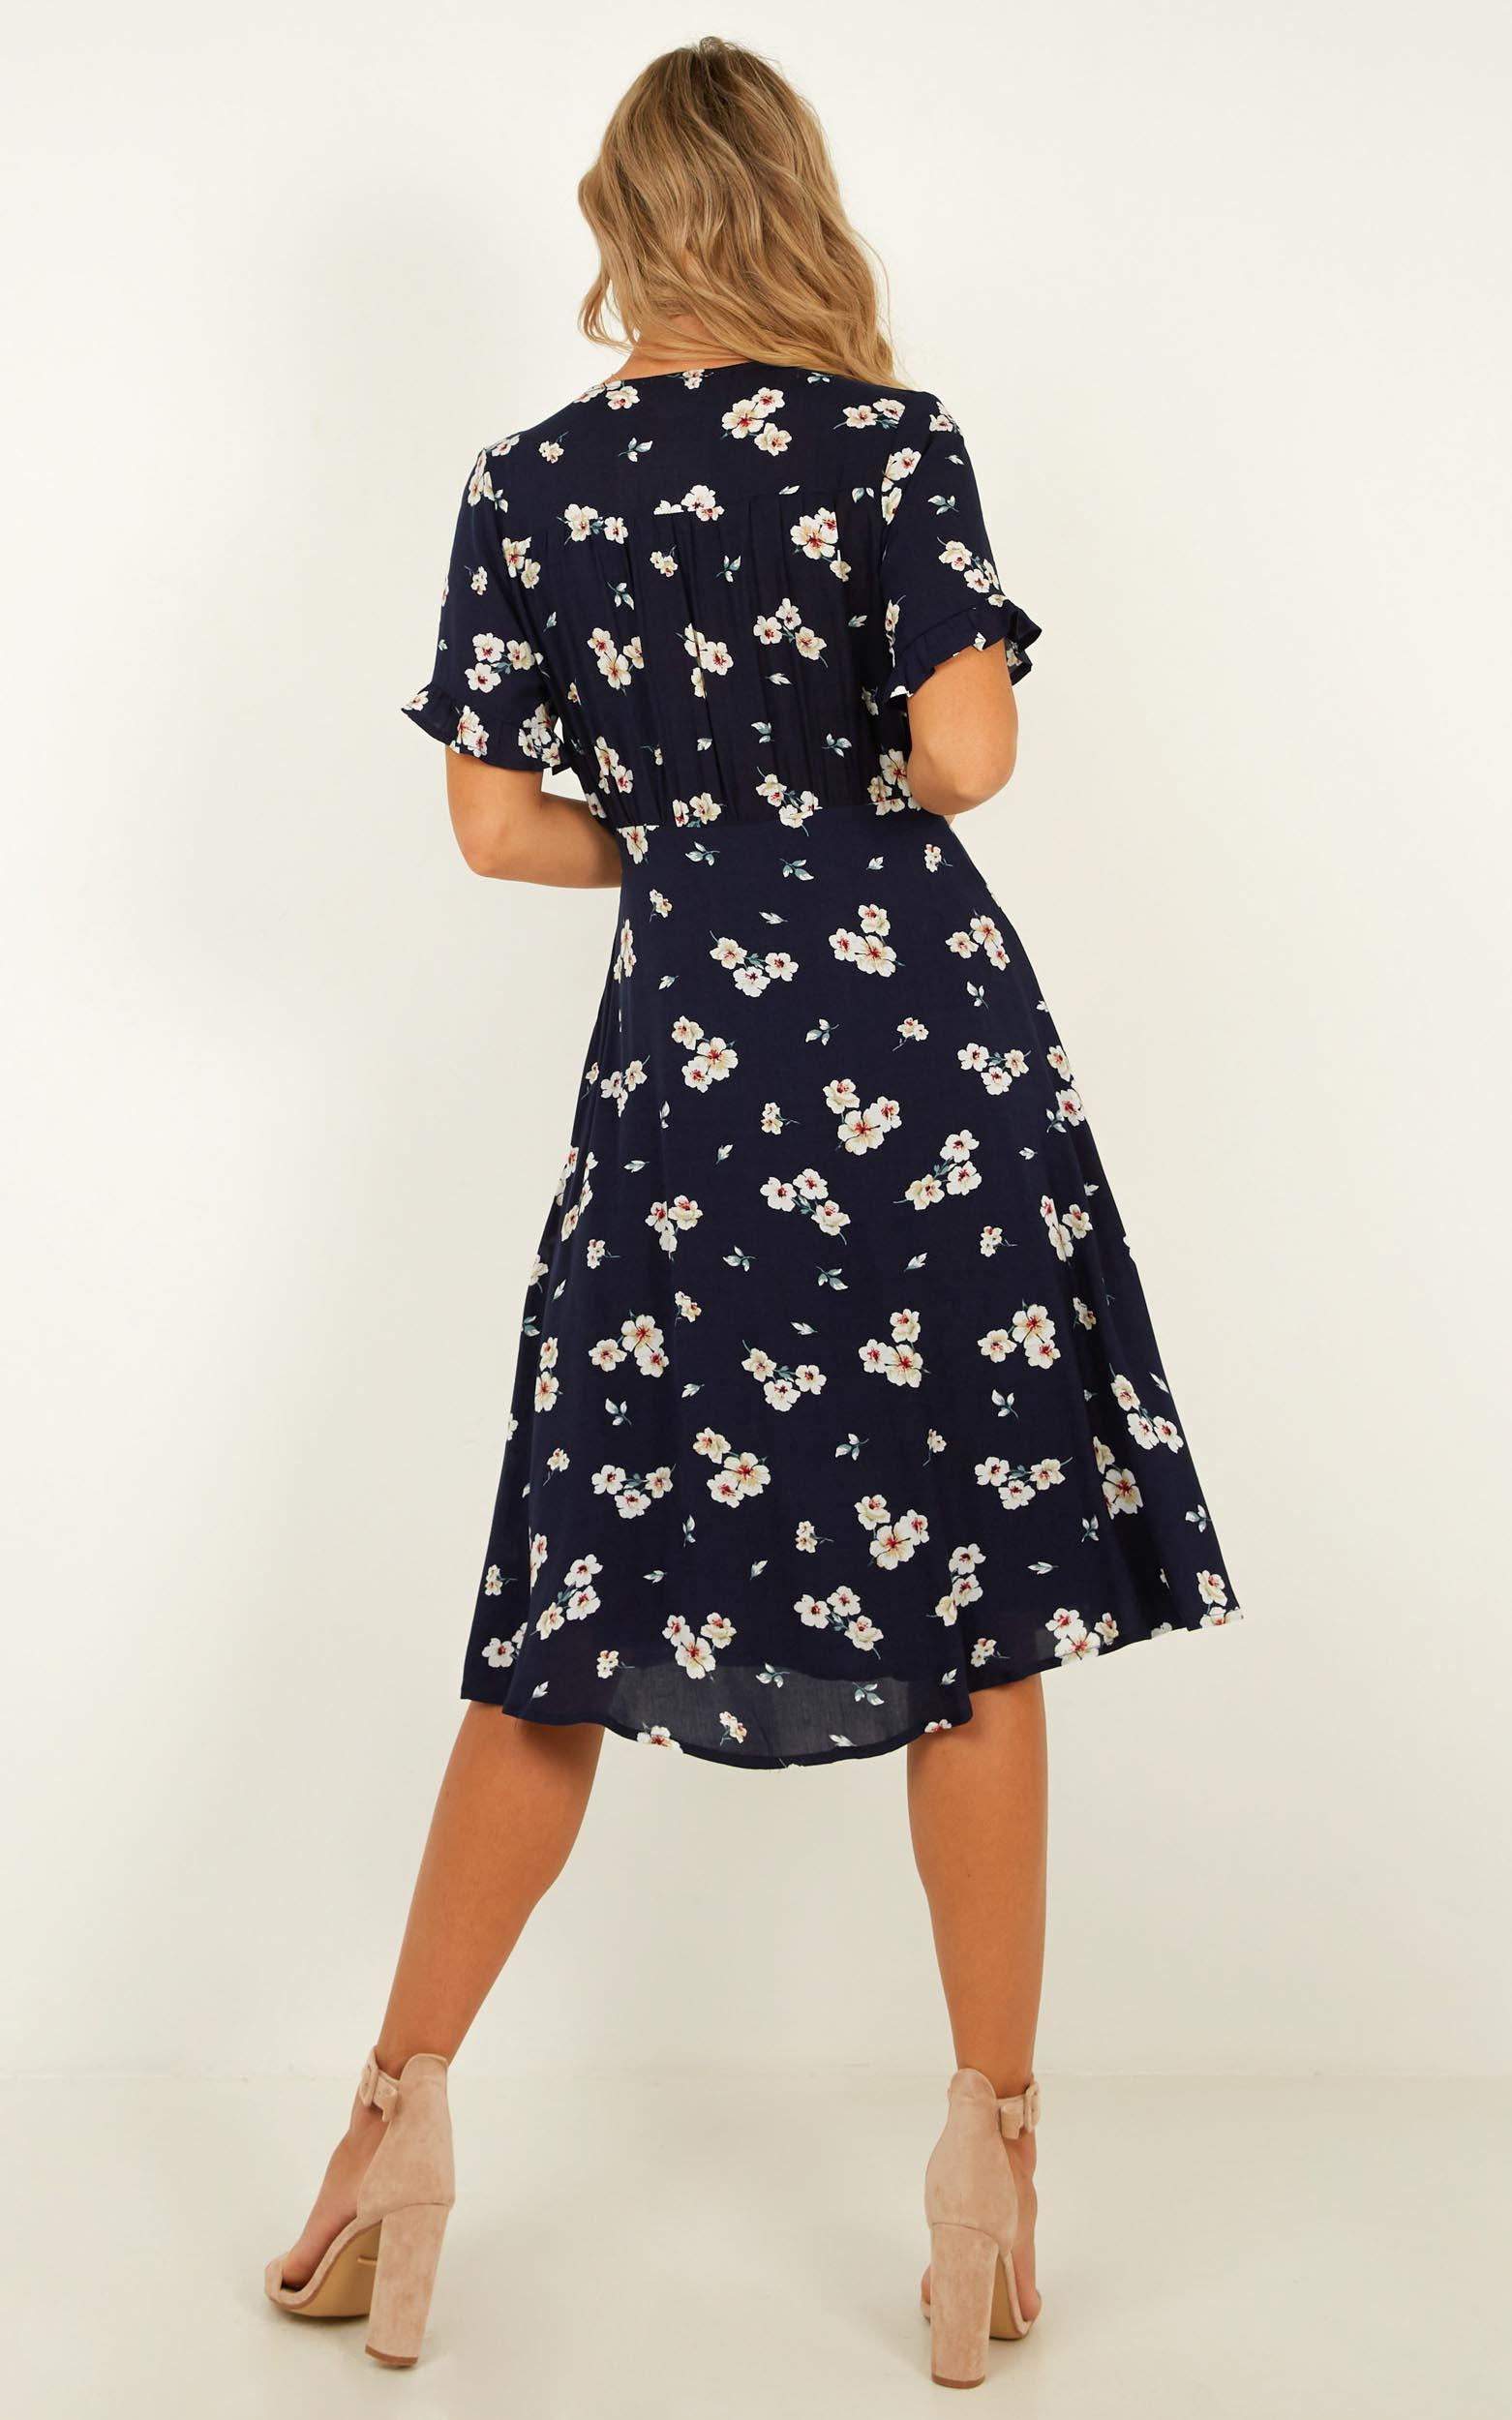 Call Me In Dress In navy floral - 20 (XXXXL), Navy, hi-res image number null